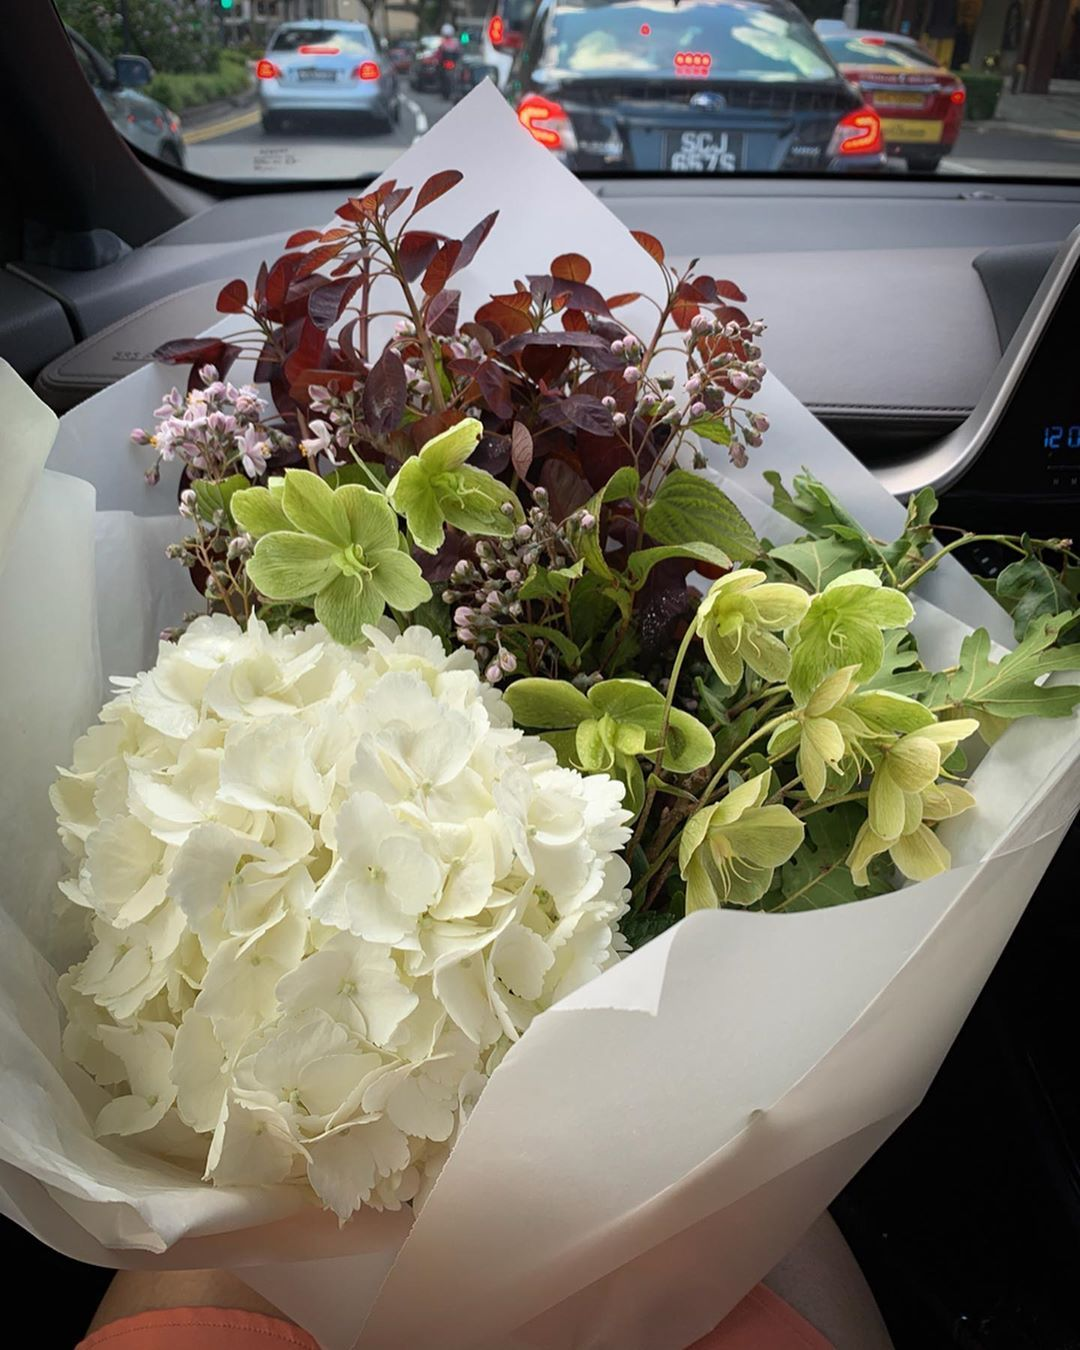 Bringing A Beautiful Bunch Of Flowers That I Picked Out At Grandiflora Dempsey For The Lovely Birthday Girl Birthday Birthdaygirl Fl Bunch Of Flowers Hydrangea Floral Arrangements